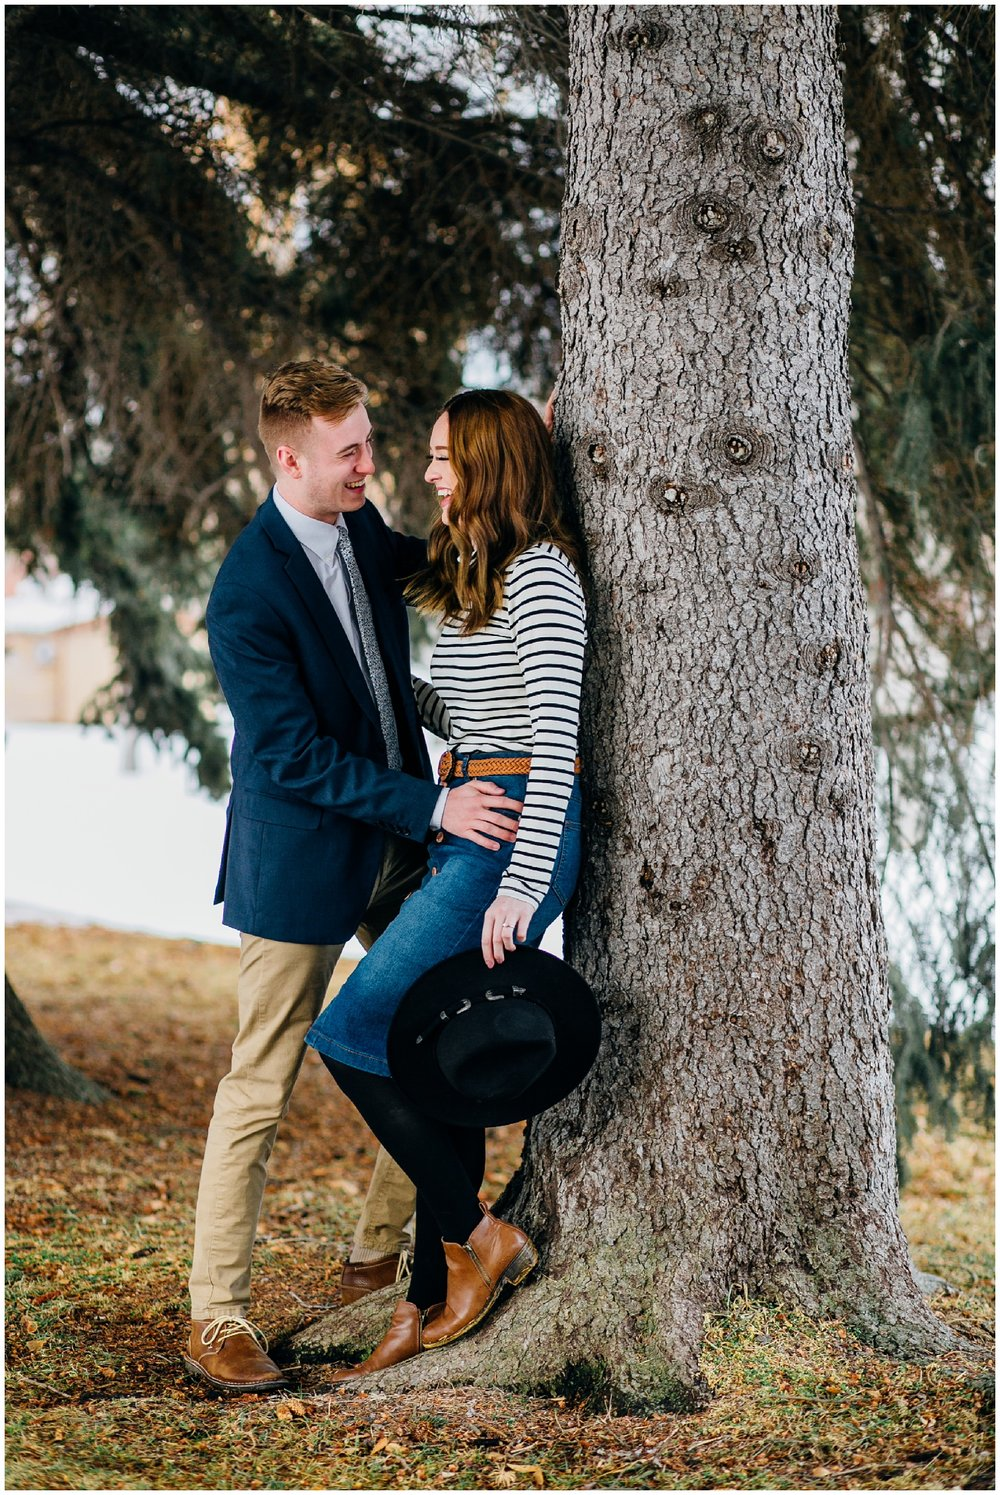 idaho-falls-wedding-photographer-mountain-adventure-engagements-rexburg-pocatello-wyoming-utah_1896.jpg